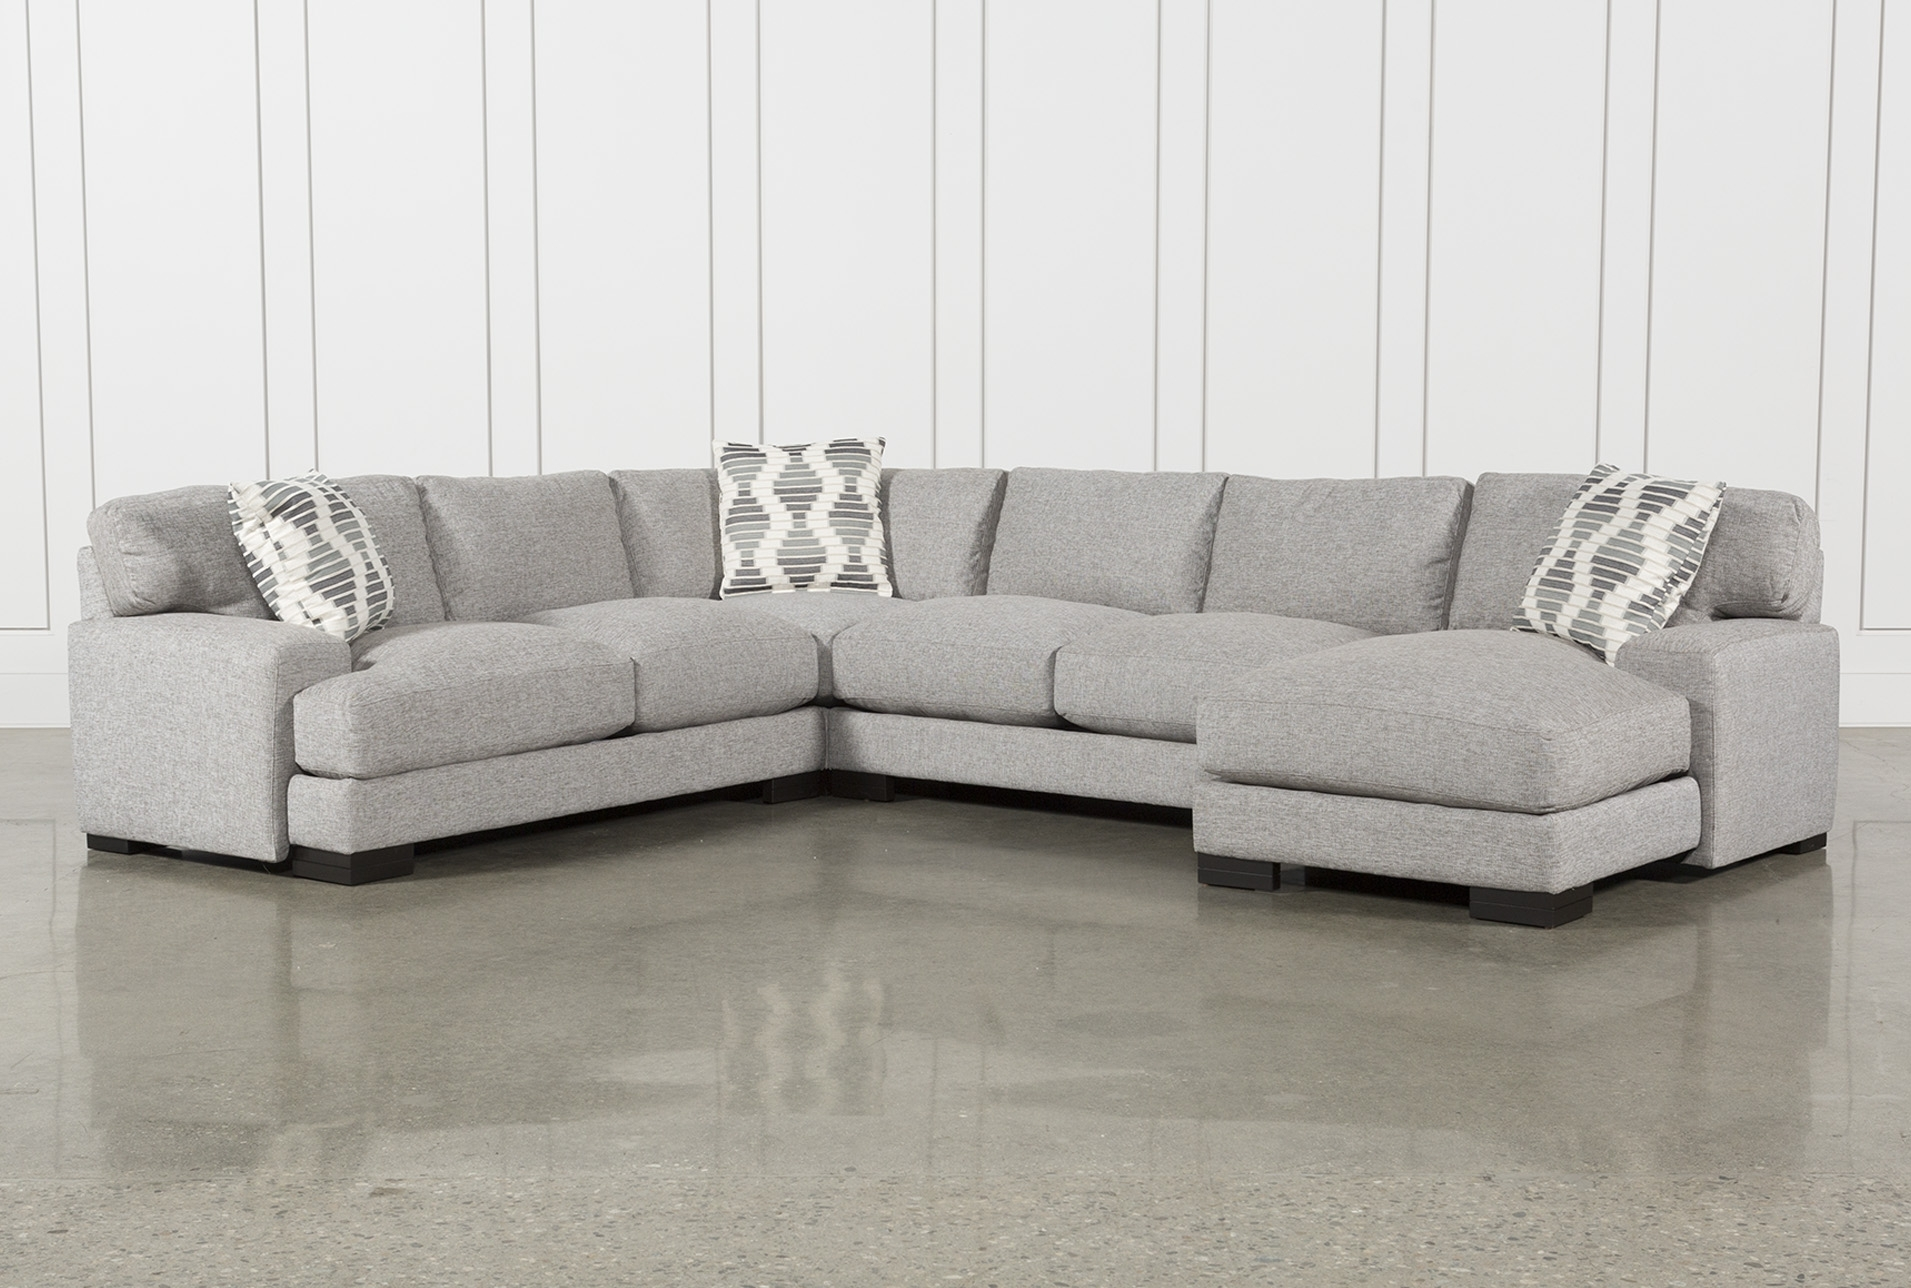 Harper Foam 3 Piece Sectional W/raf Chaise Intended For Aquarius Light Grey 2 Piece Sectionals With Raf Chaise (Image 11 of 25)